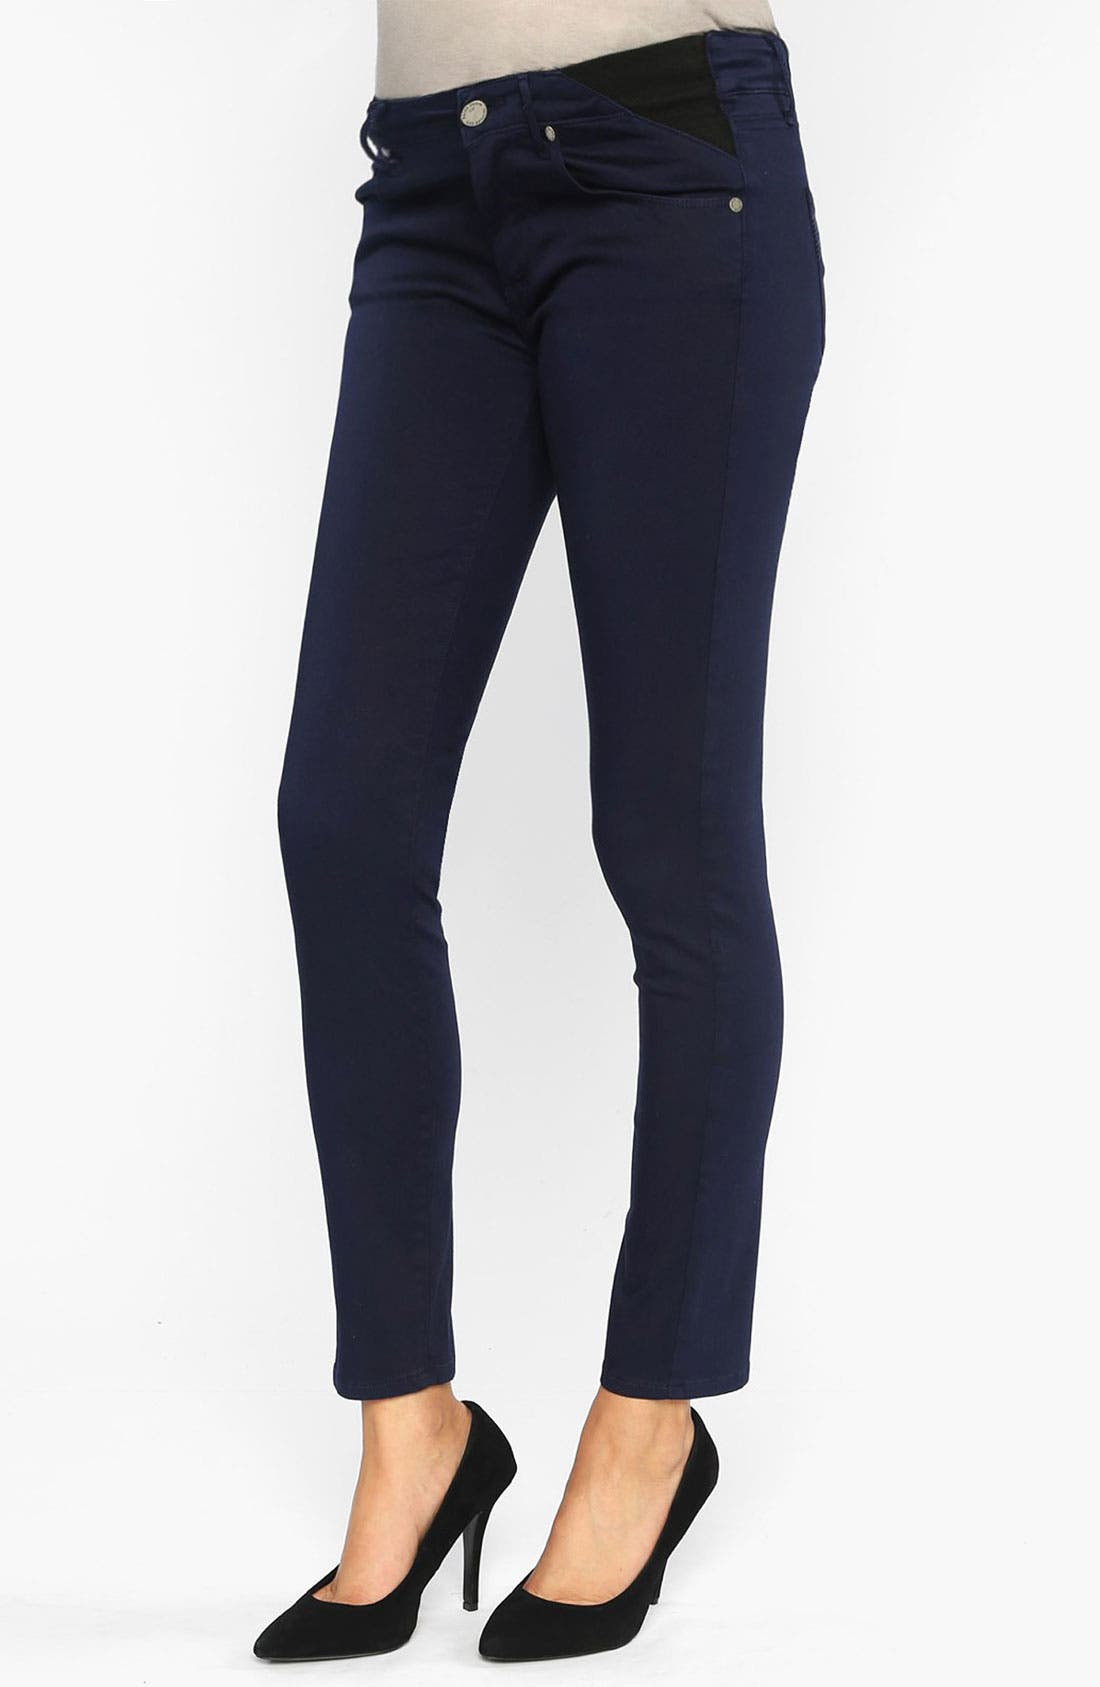 Alternate Image 1 Selected - Paige Denim 'Verdugo' Maternity Ankle Ultra Skinny Jeans (Pacific Dusk)